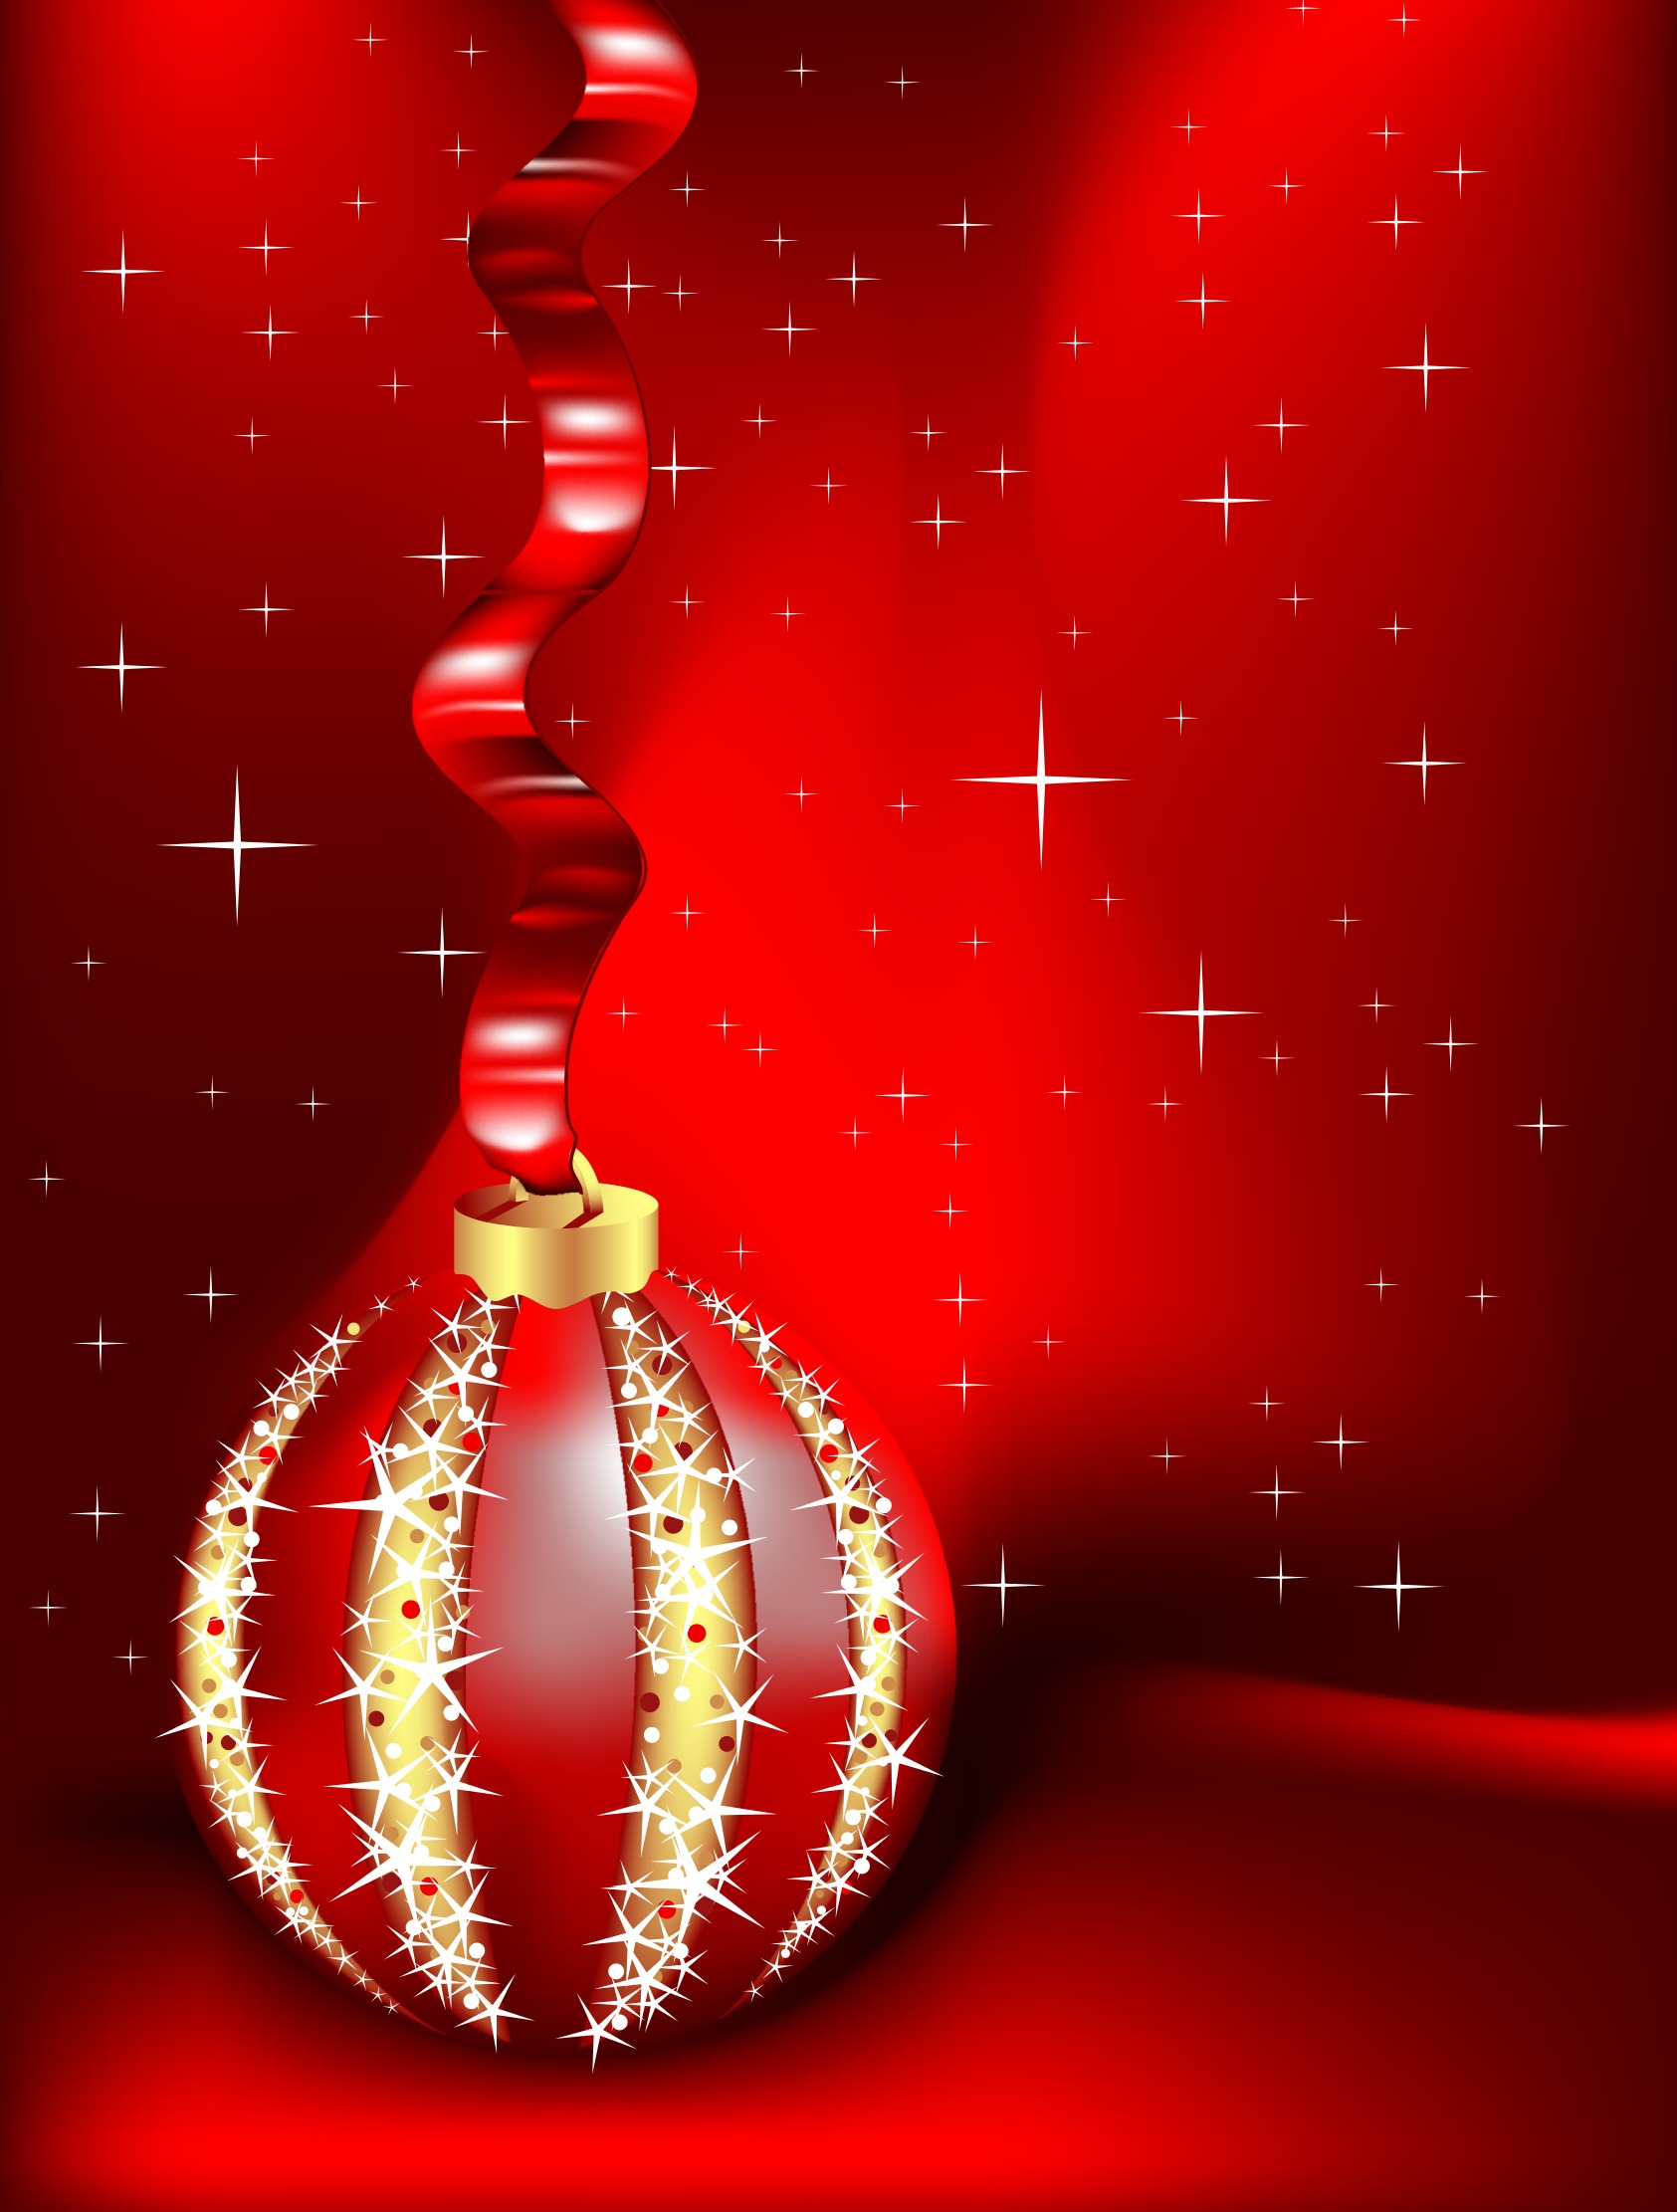 red christmas ornament background download free vector